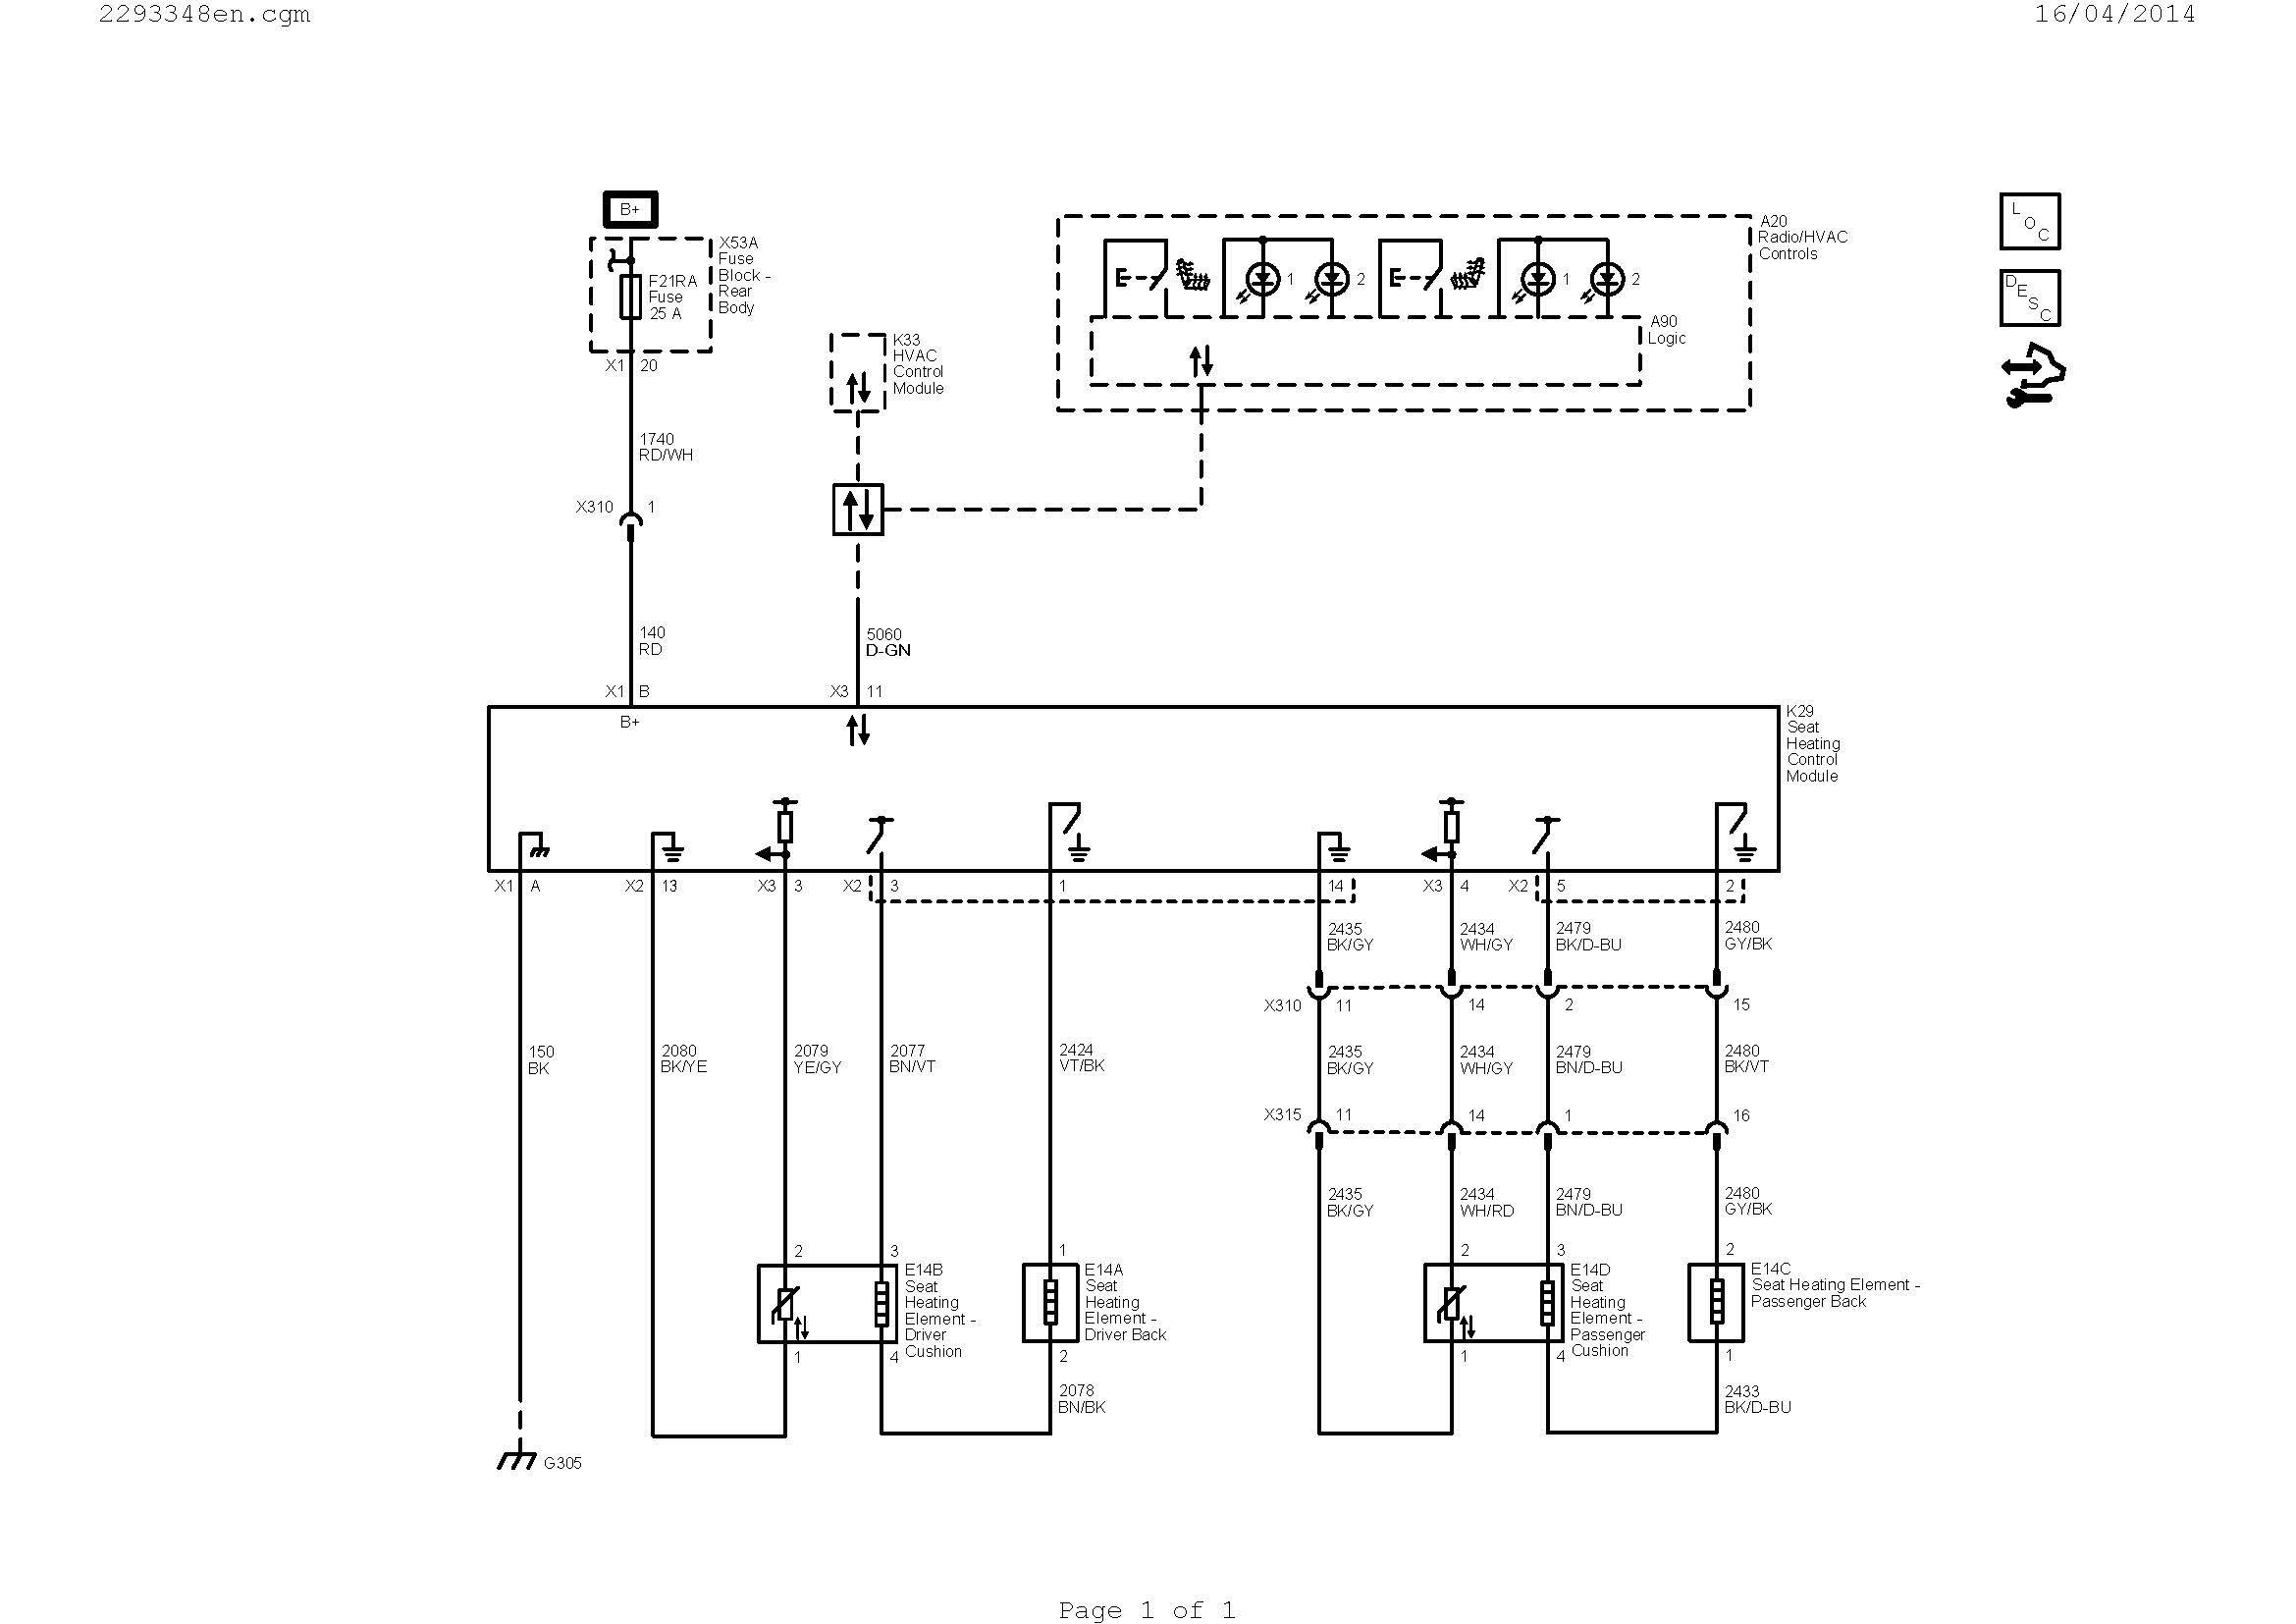 Engine diagram labeled k40 relay wiring diagram valid engine valve engine diagram labeled wiring diagram for kohler engine valid mechanical engineering of engine diagram labeled k40 swarovskicordoba Gallery